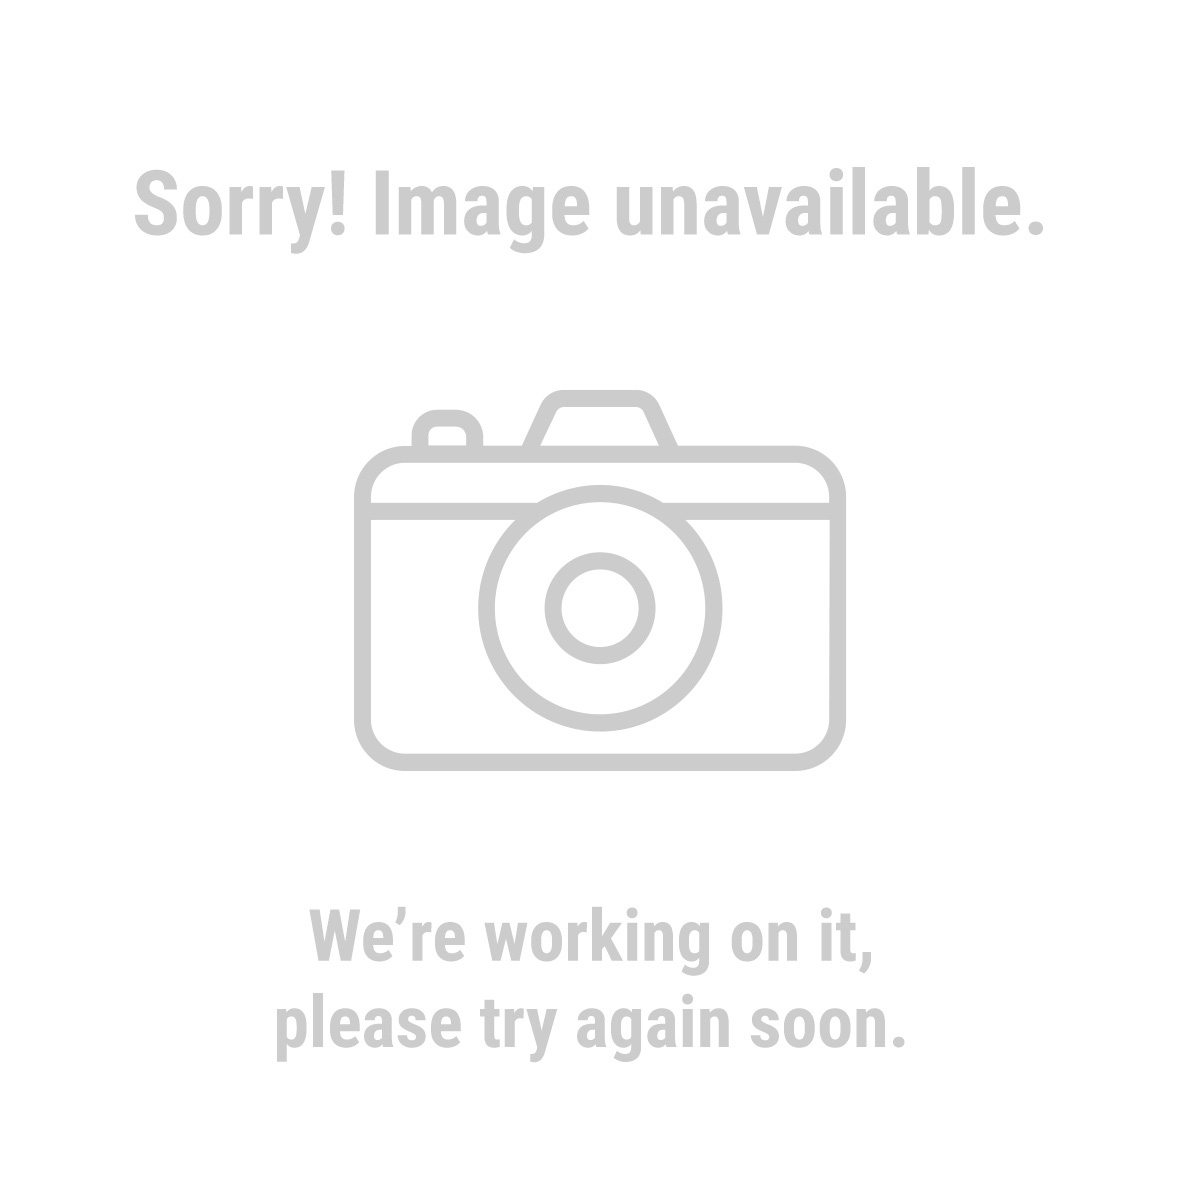 Daytona® 63183 3 Ton Daytona Professional Steel Jack - Super Duty